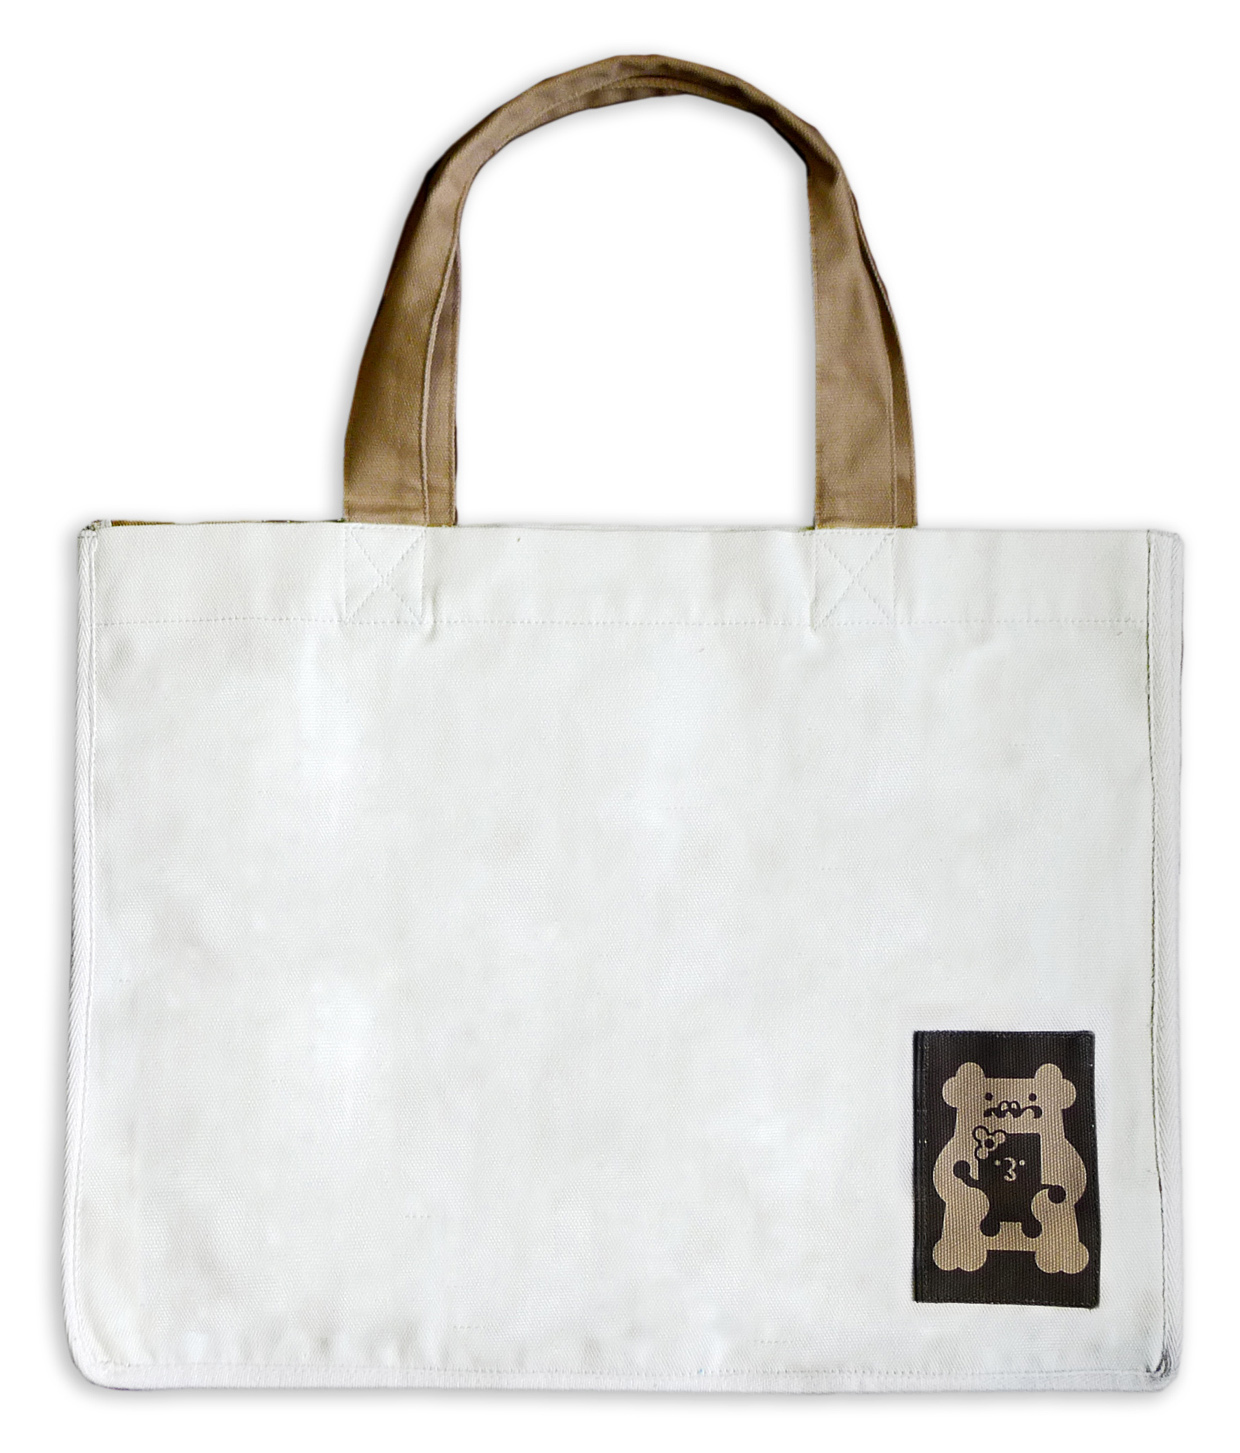 canvasfrontbag